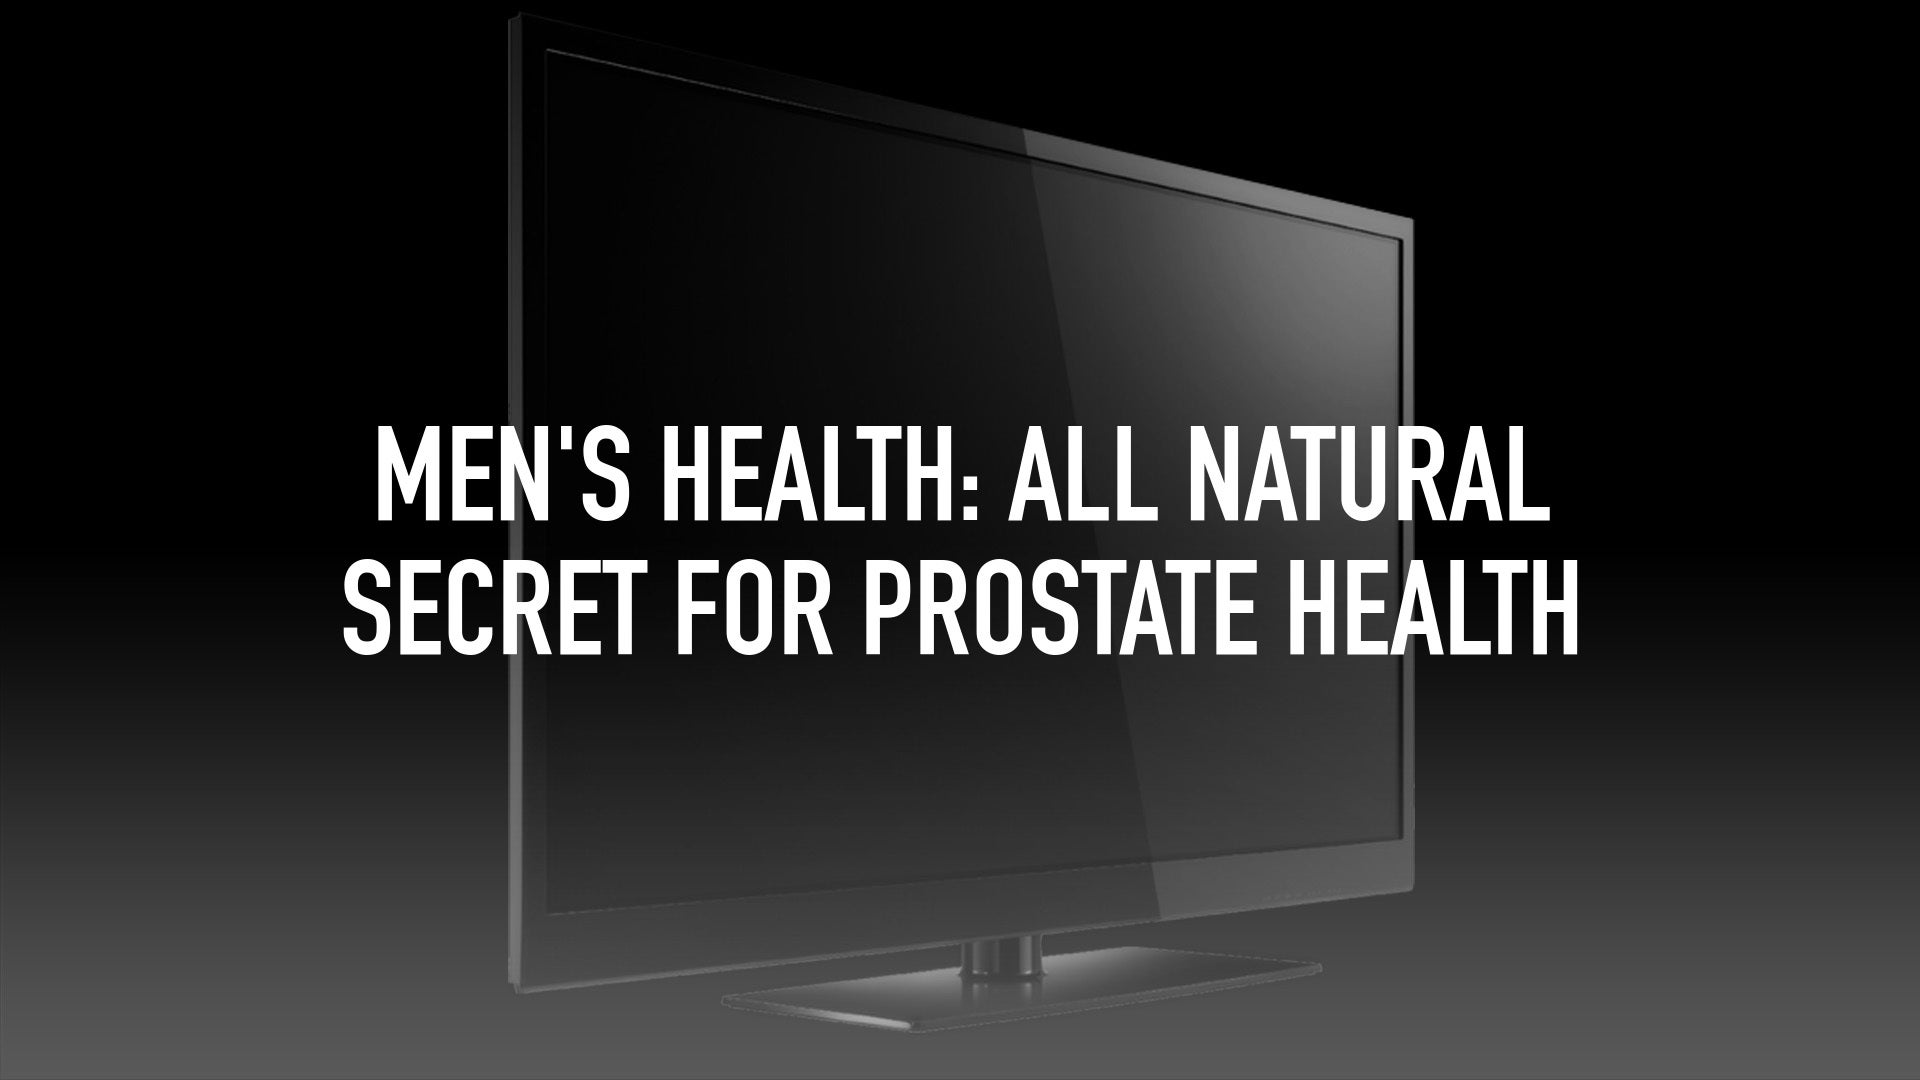 Men's Health: All Natural Secret for Prostate Health